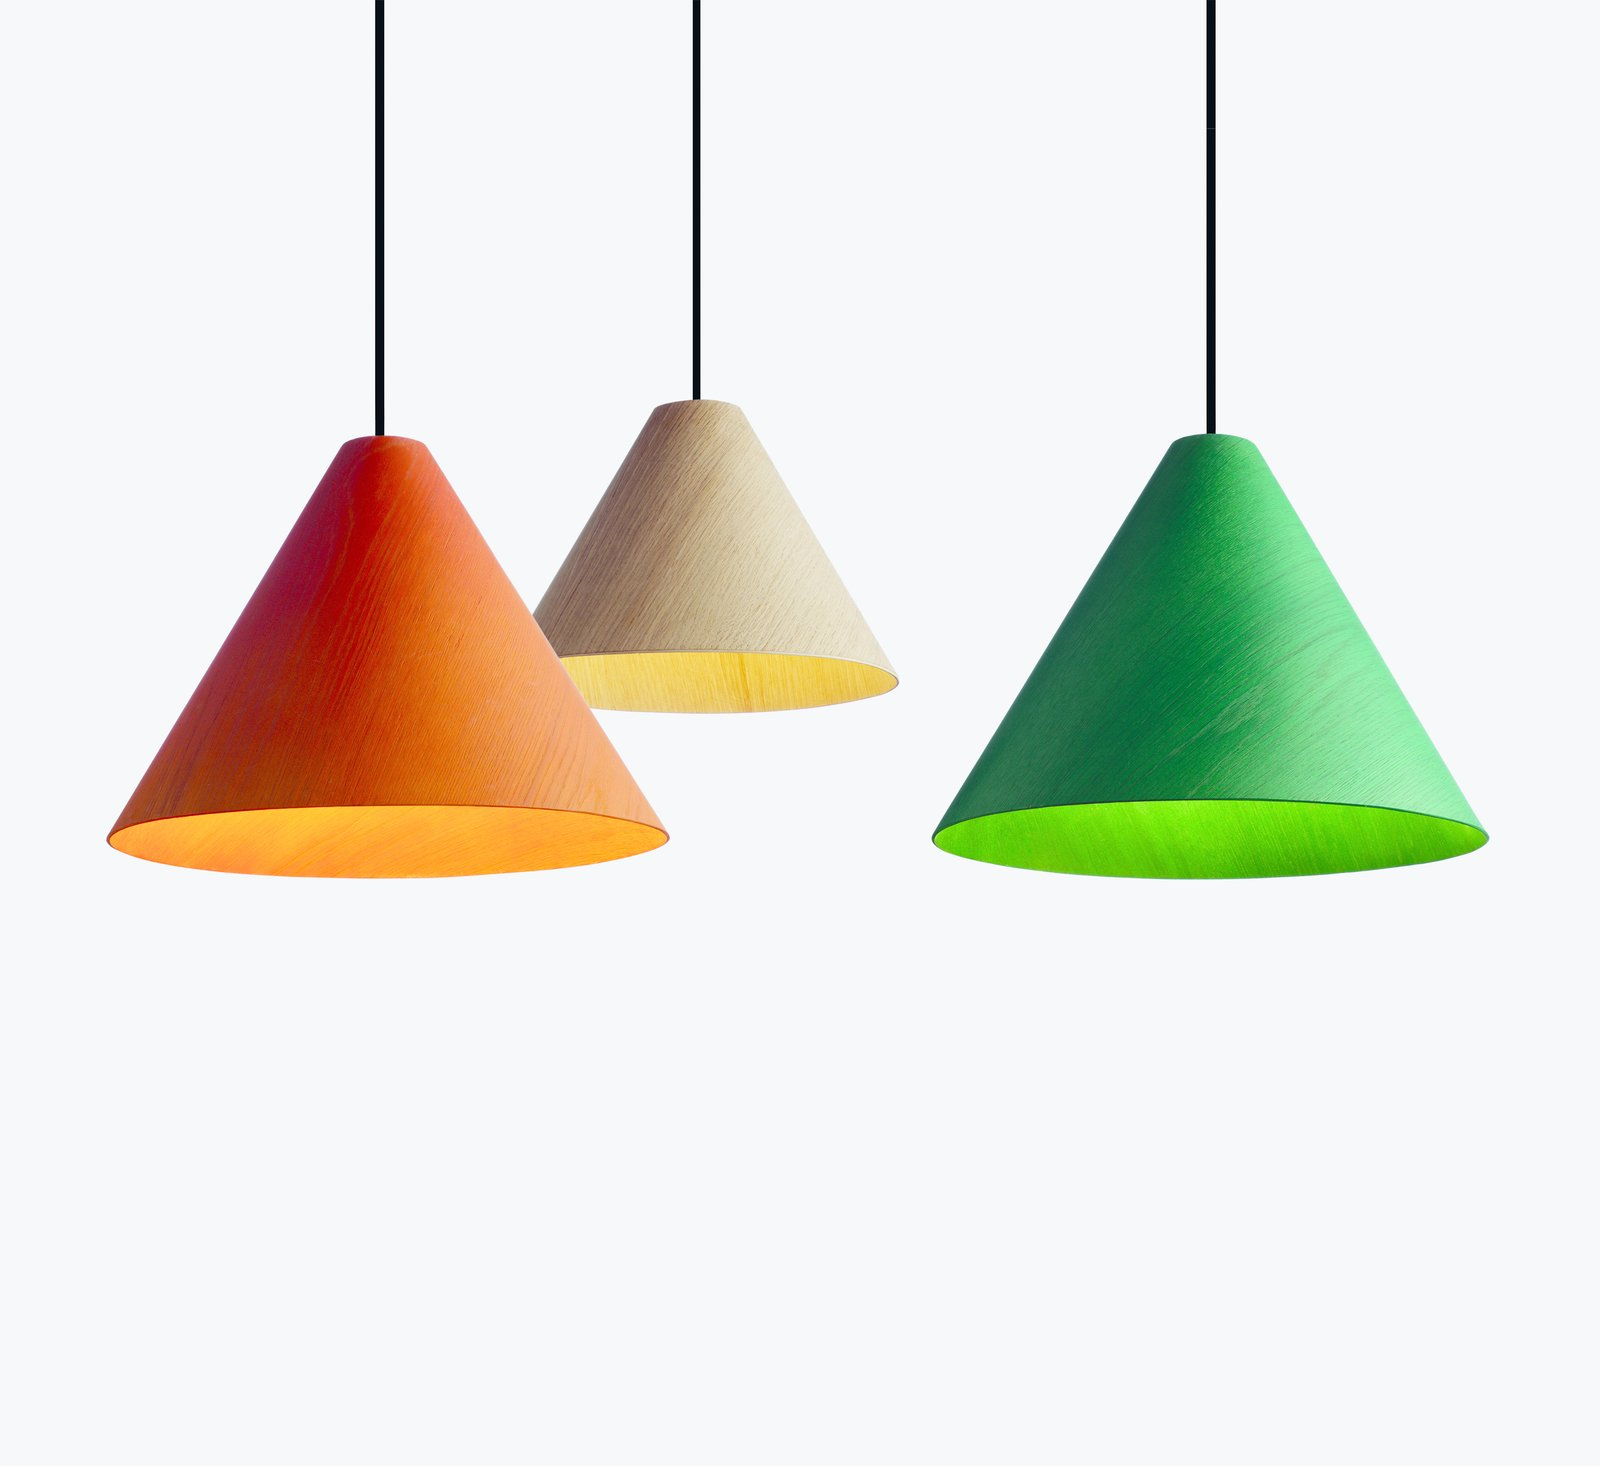 Milan saw the launch of wrong.london, an offshoot of HAY that's run by creative director Sebastian Wrong. The lighting-focused division released these veneered-oak lampshades, dubbed 30degree, among other designs.  60+ Modern Lighting Solutions by Dwell from A Big Hello to These New HAY Launches